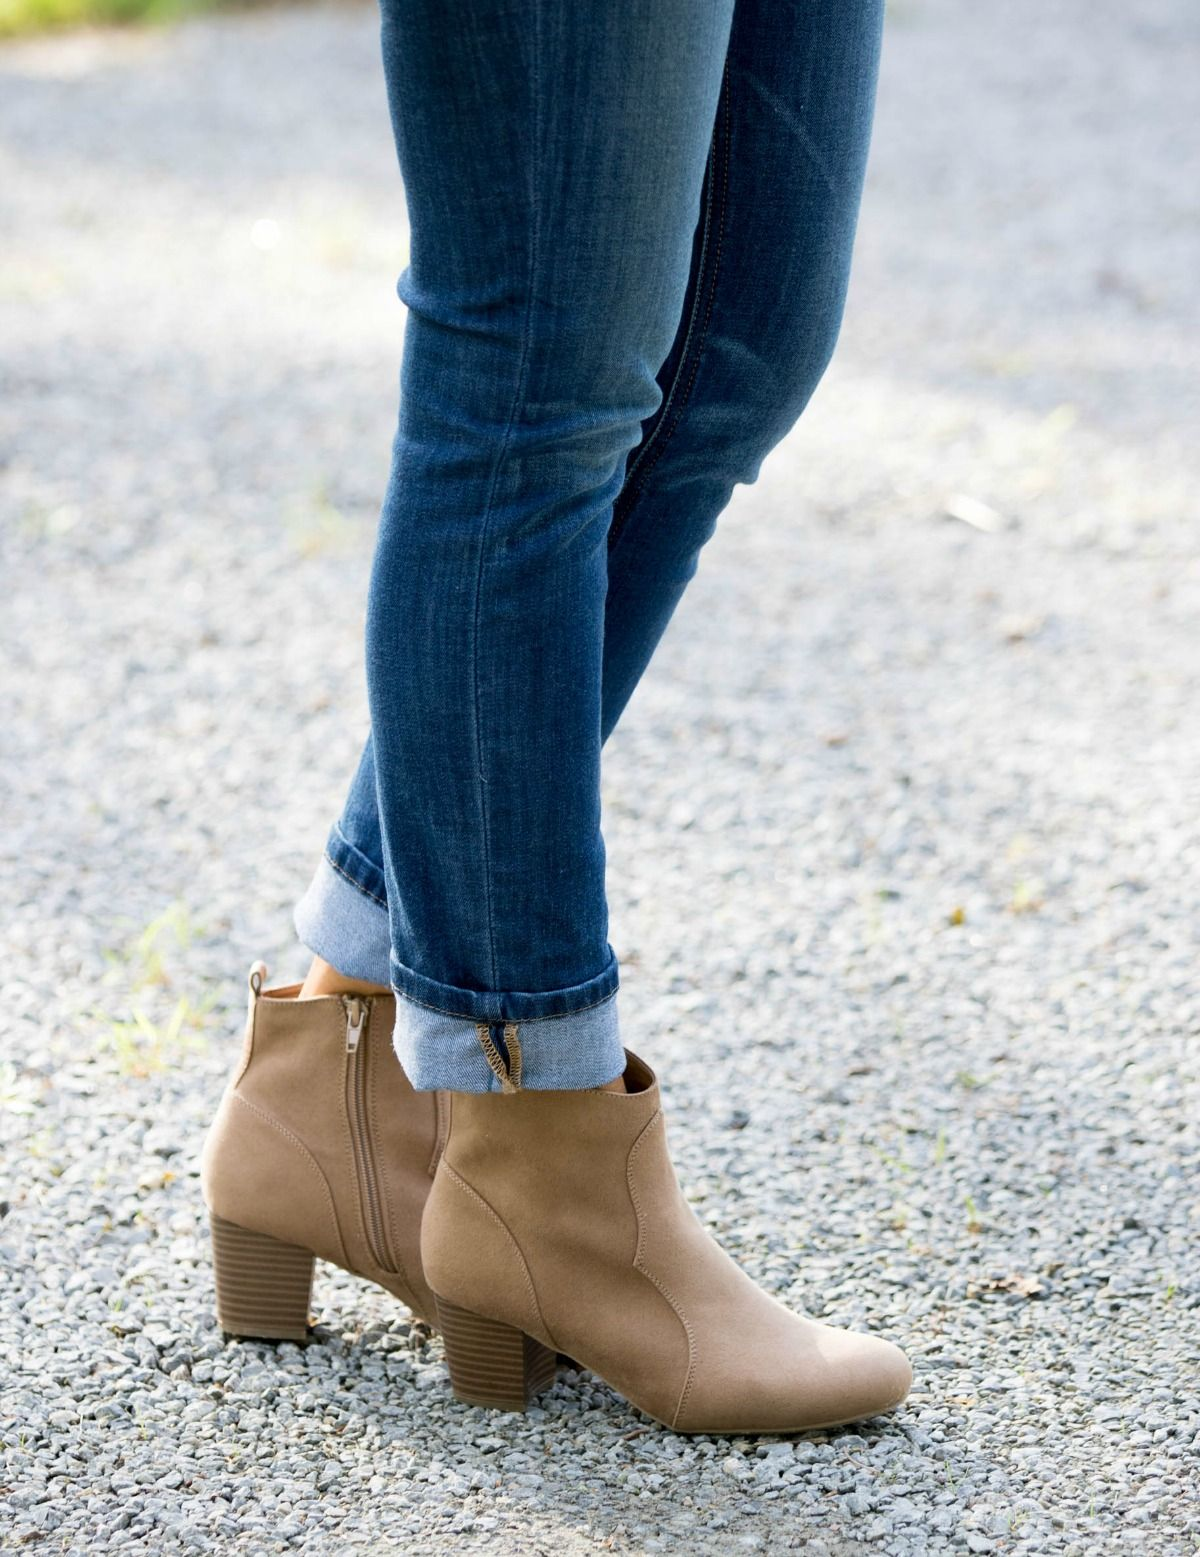 c4bbba0439ff96 Ankle Boots from Payless